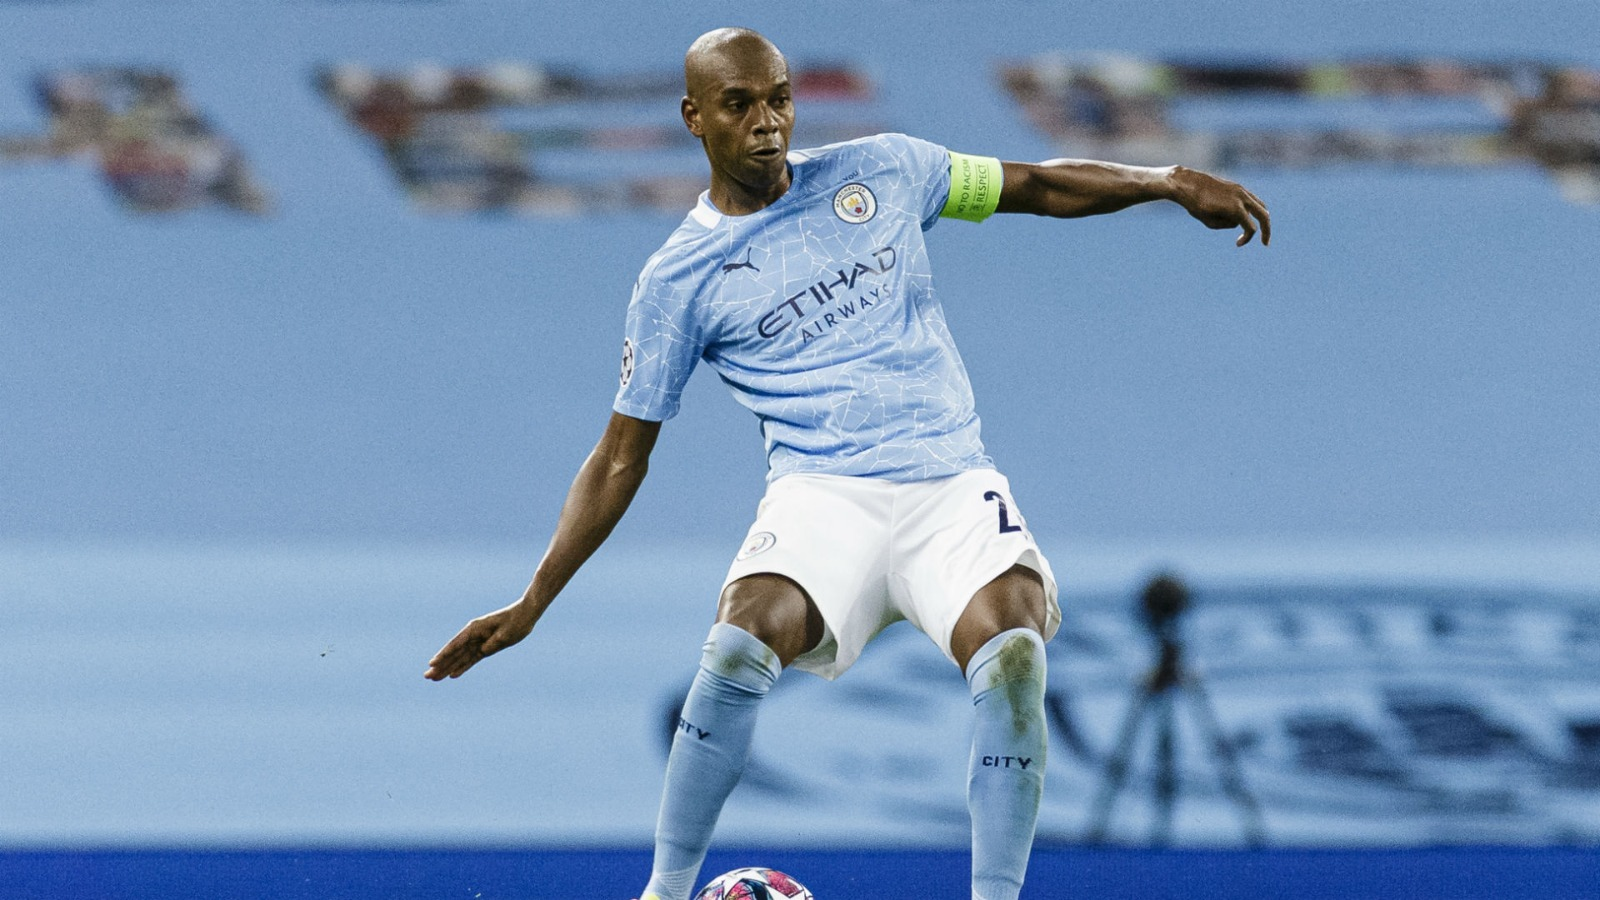 Fernandinho to stay at Manchester City club until the 2021/22 season